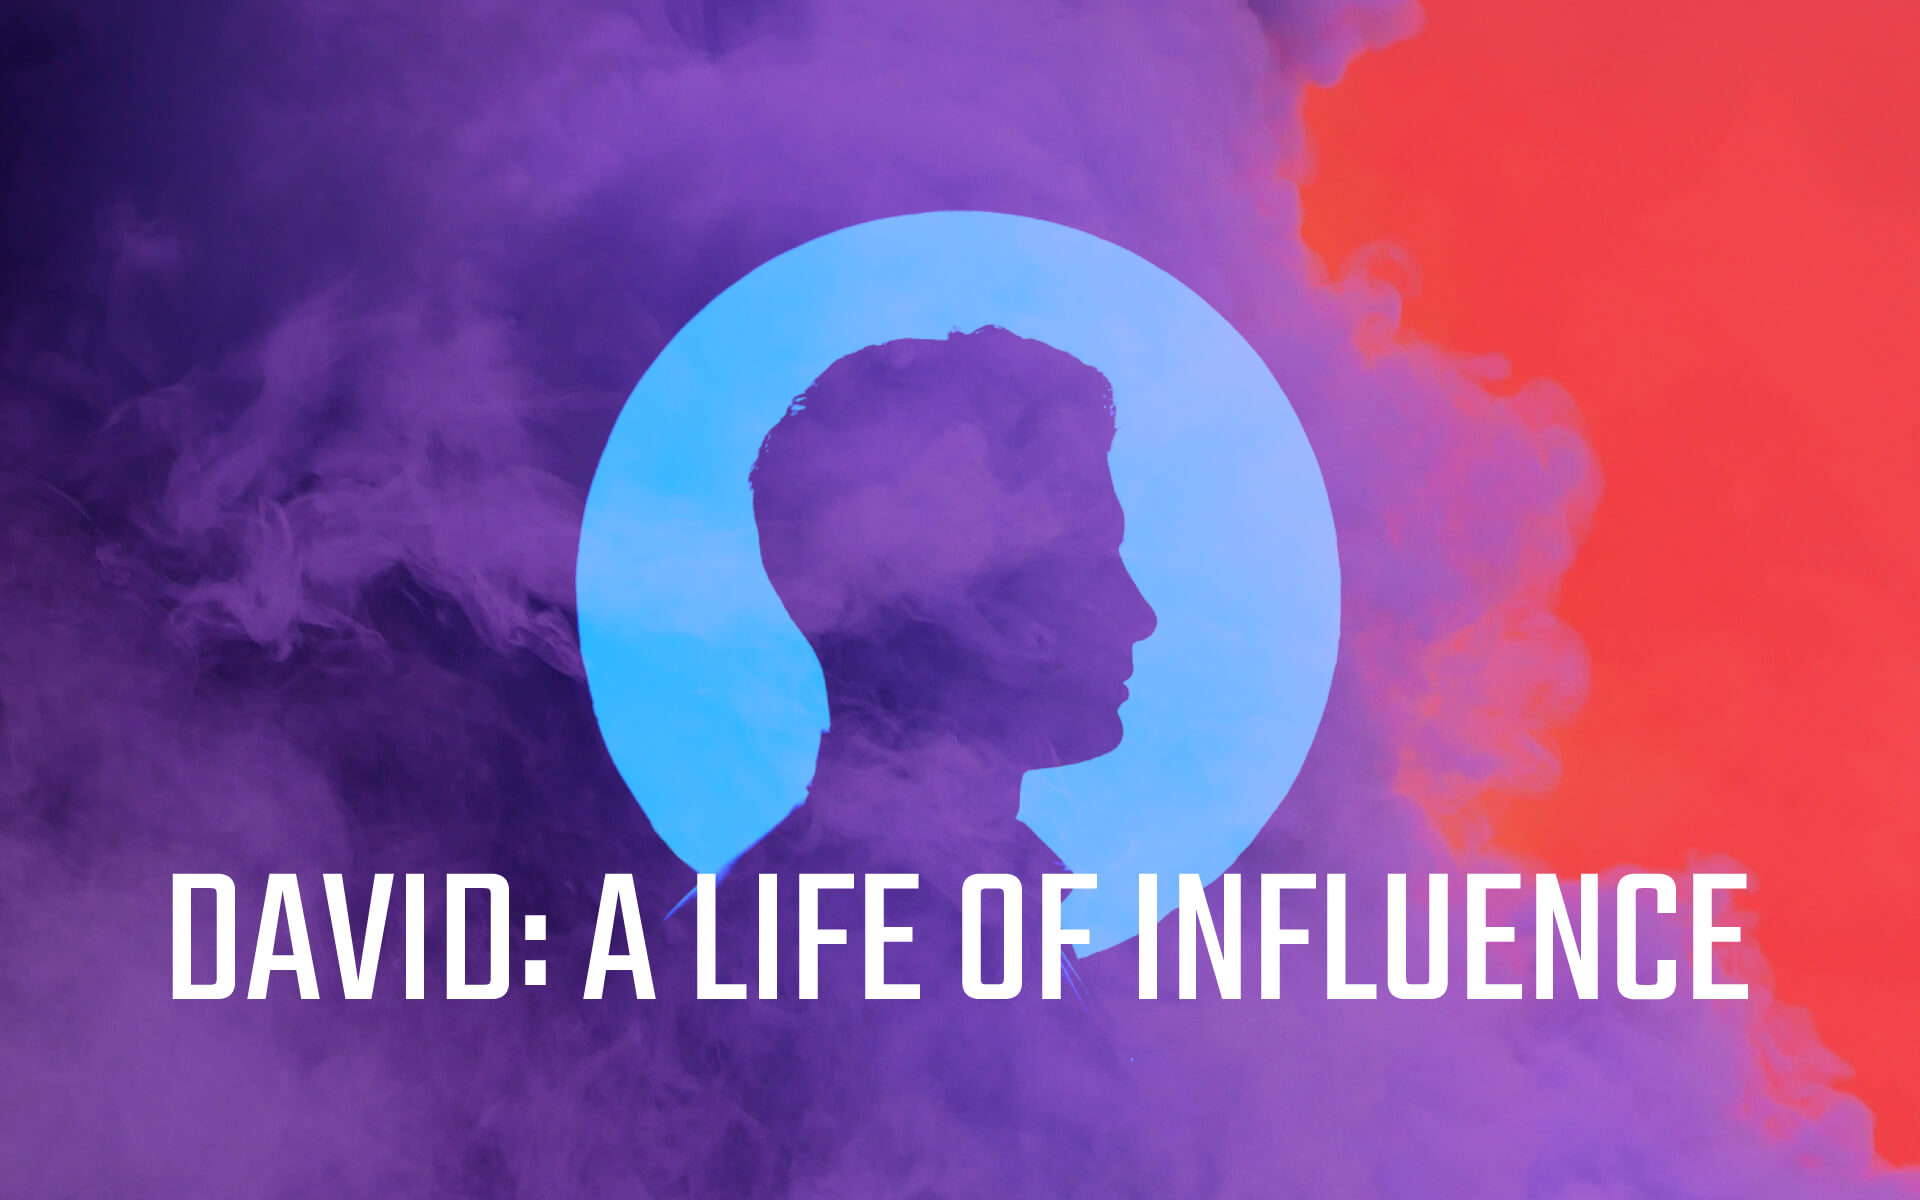 David: A Life of Influence